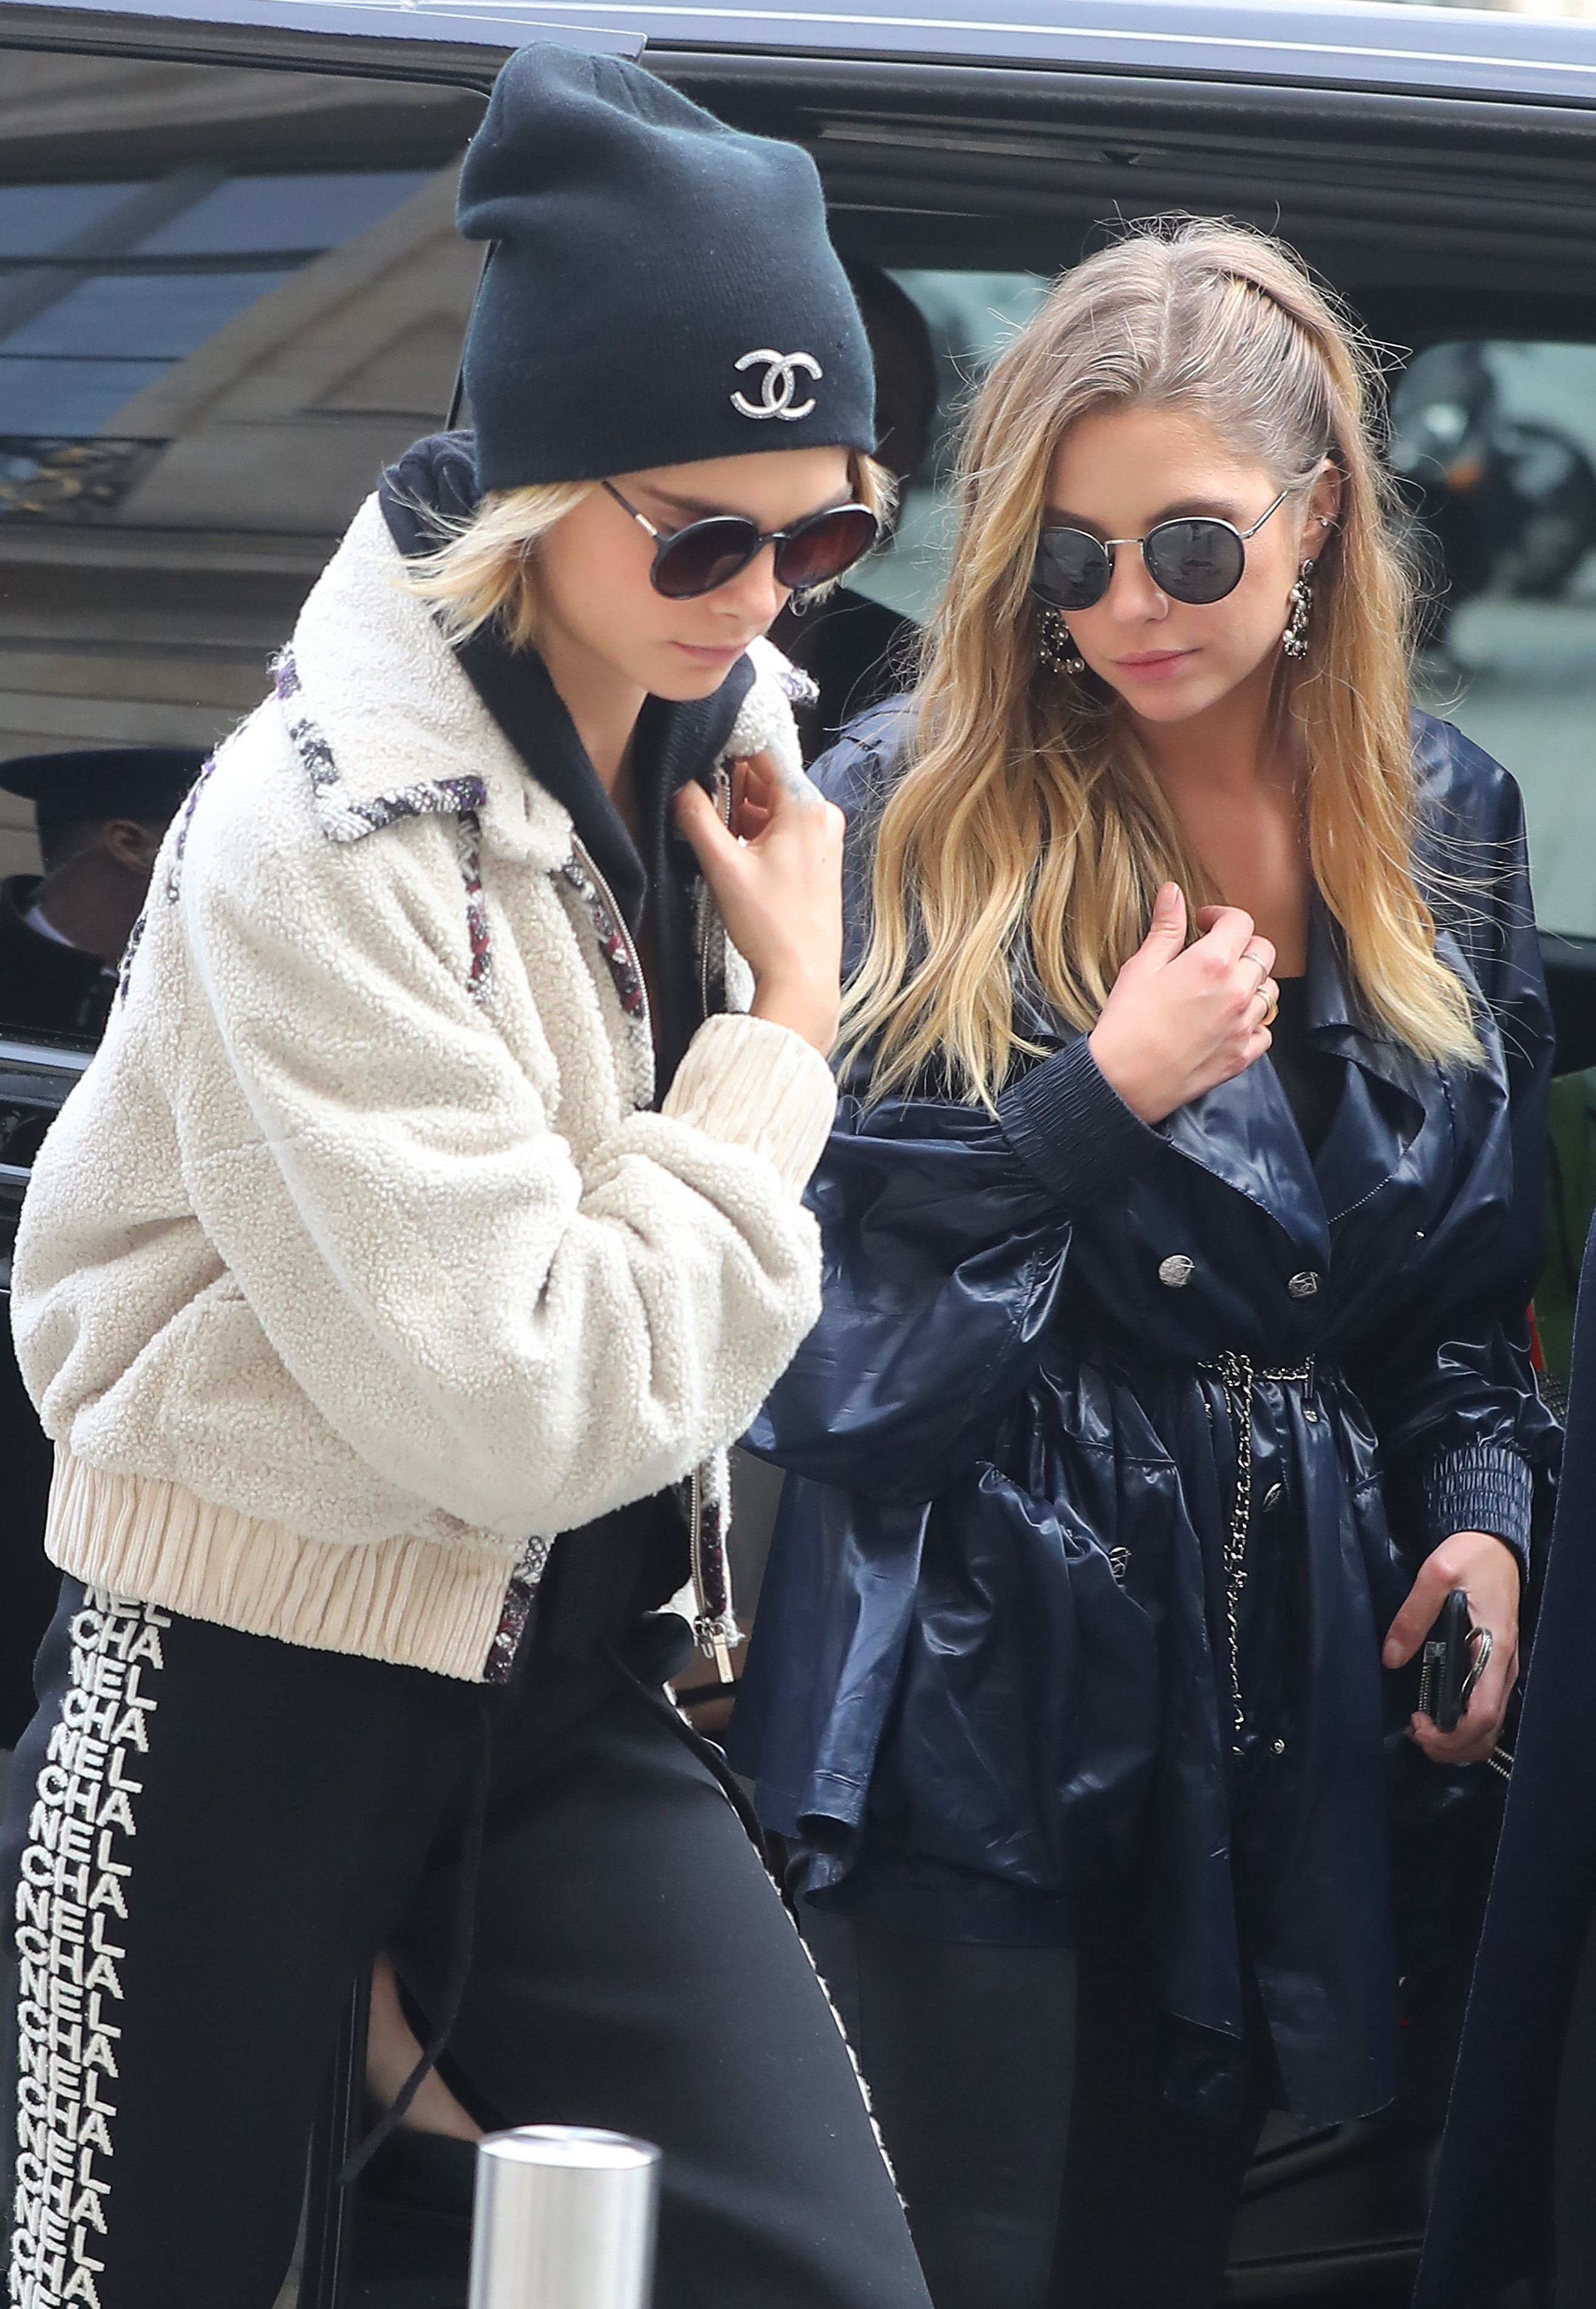 Ashley Benson comforts girlfriend Cara Delevingne after Chanel show